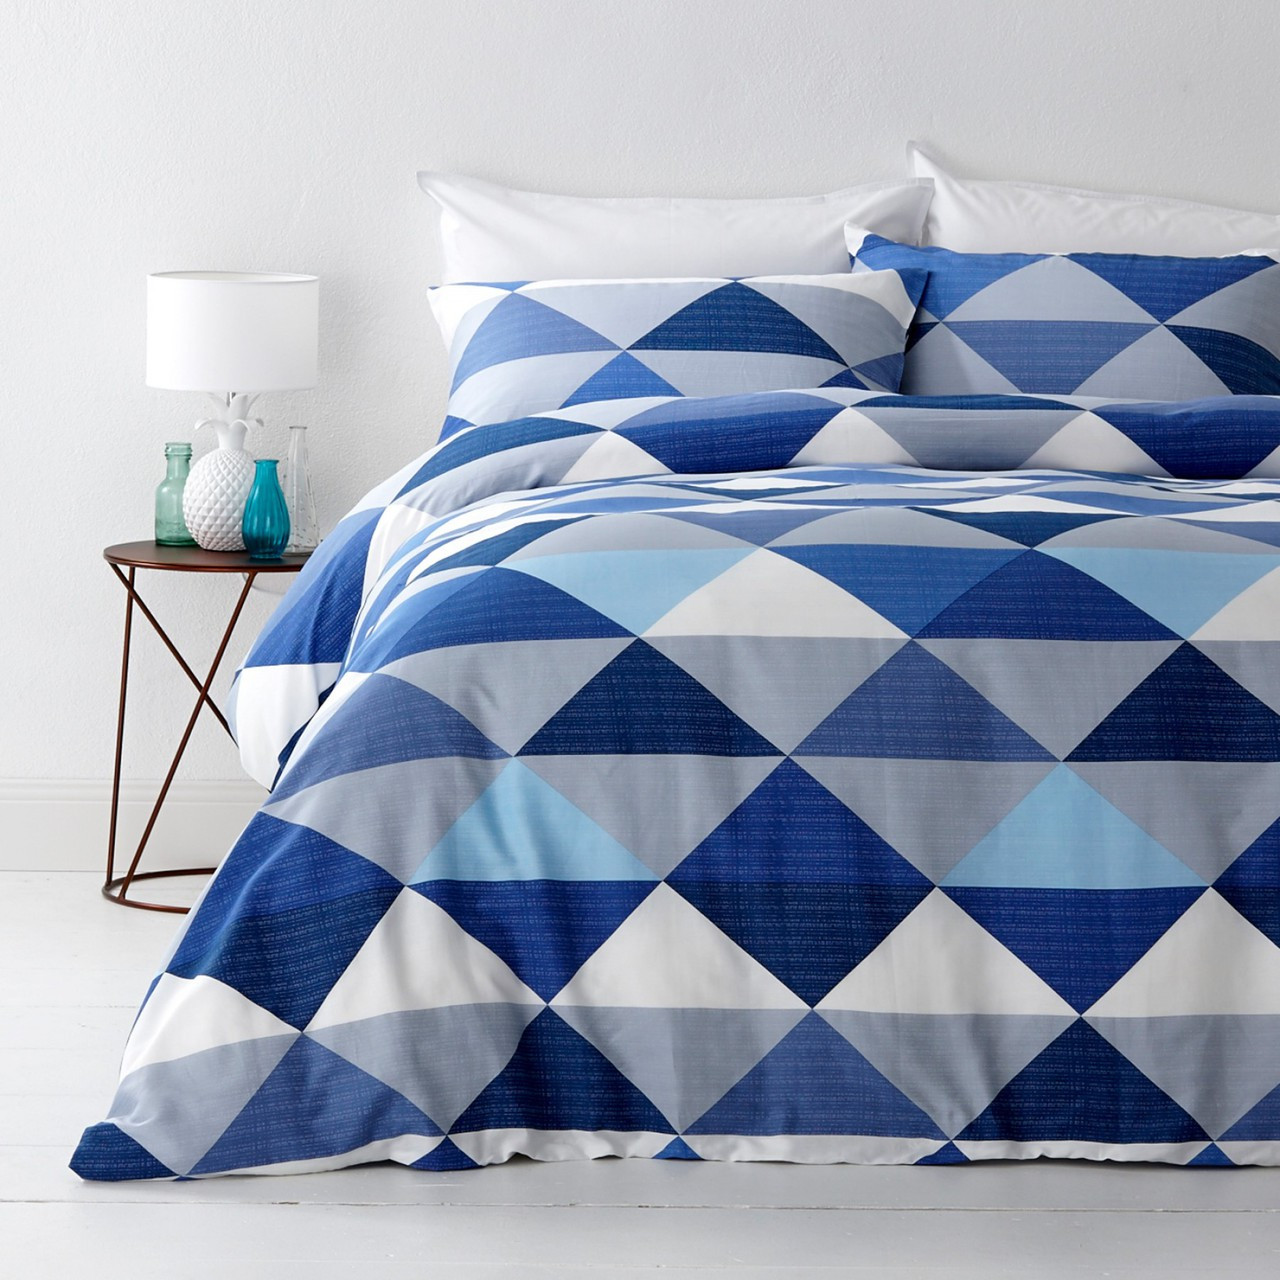 In 2 Linen Tanika Blue Double Bed Quilt Cover Set